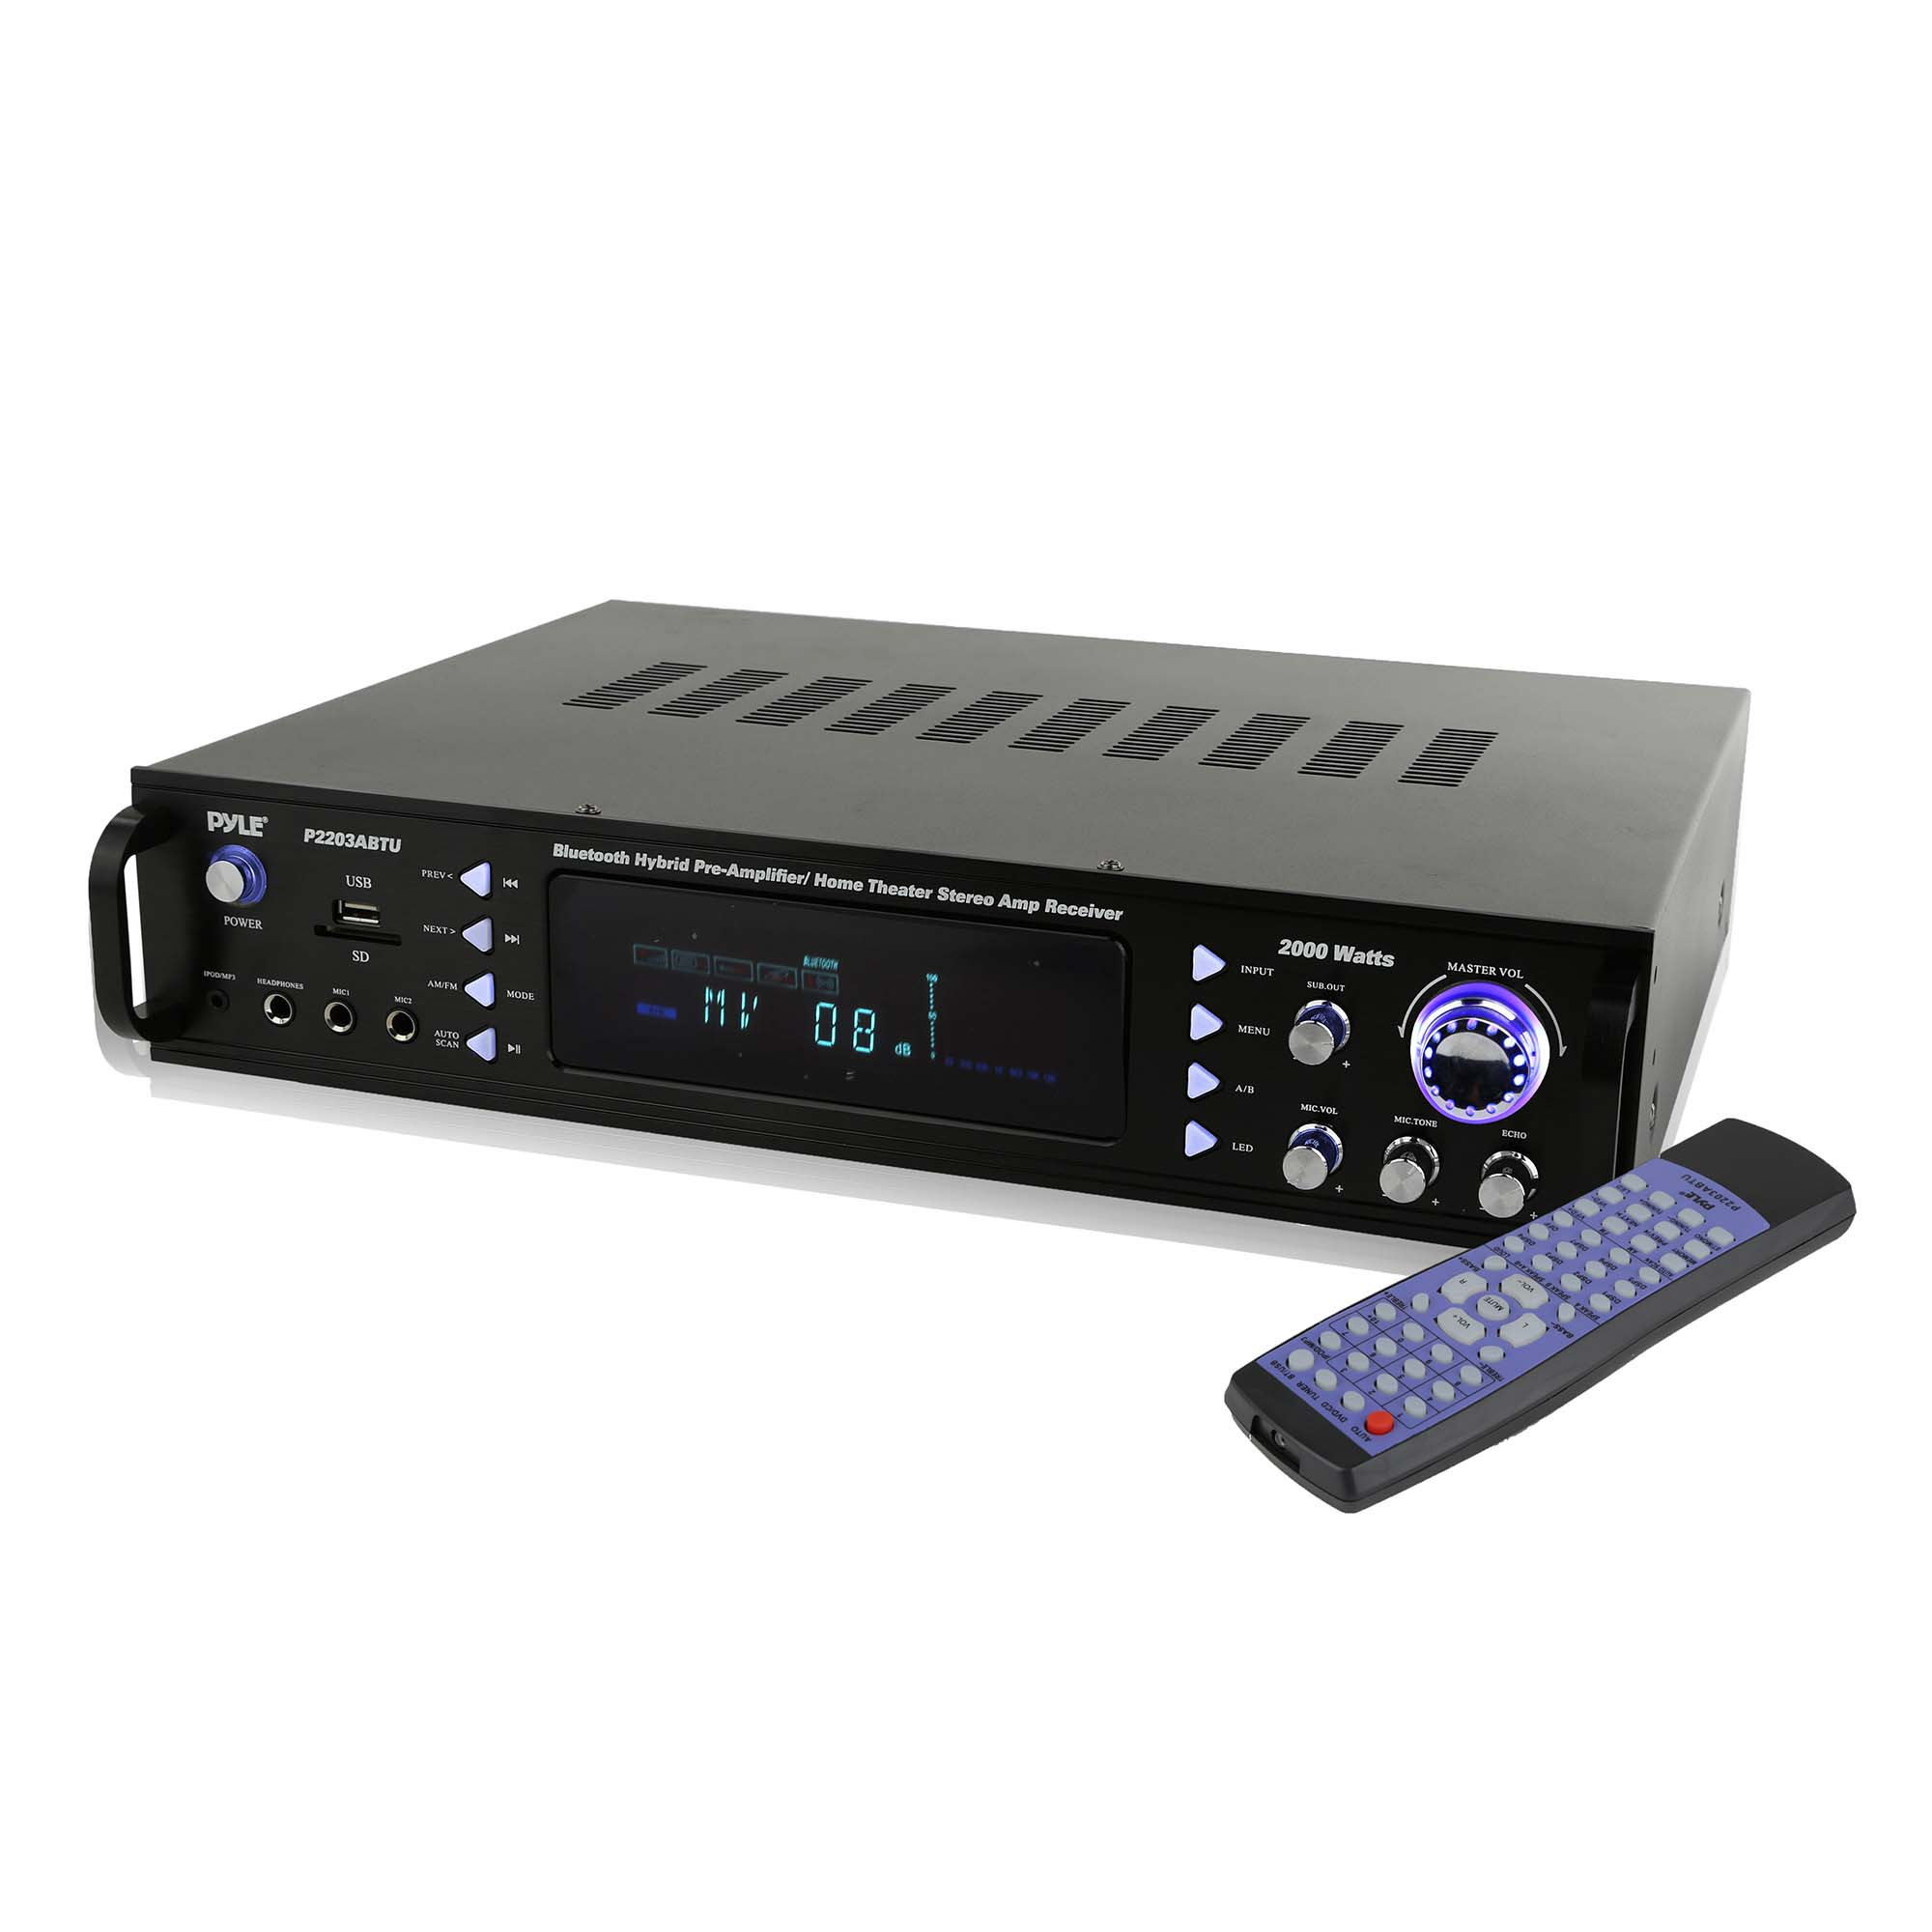 Details about Pyle Home Theater Bluetooth Hybrid Pre-Amplifier Stereo  Receiver | P2203ABTU